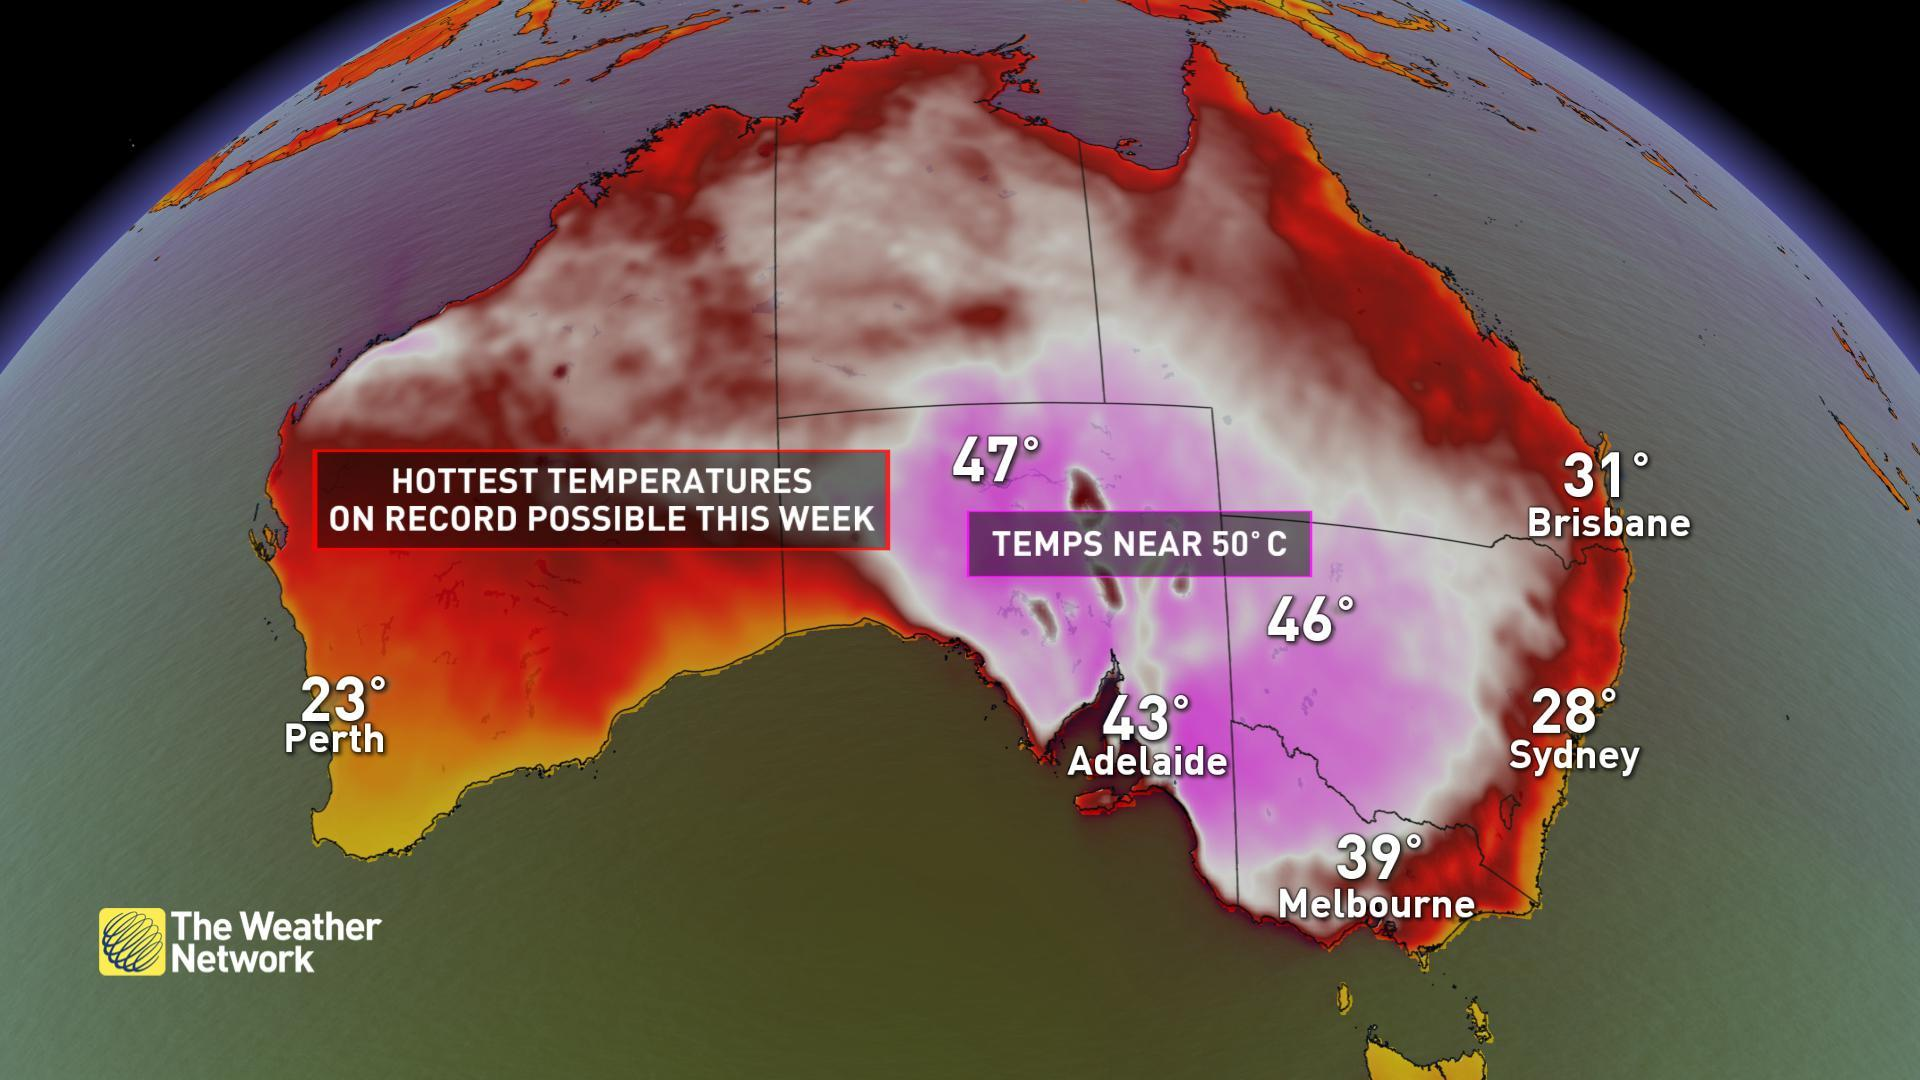 Hottest day ever record broken - again